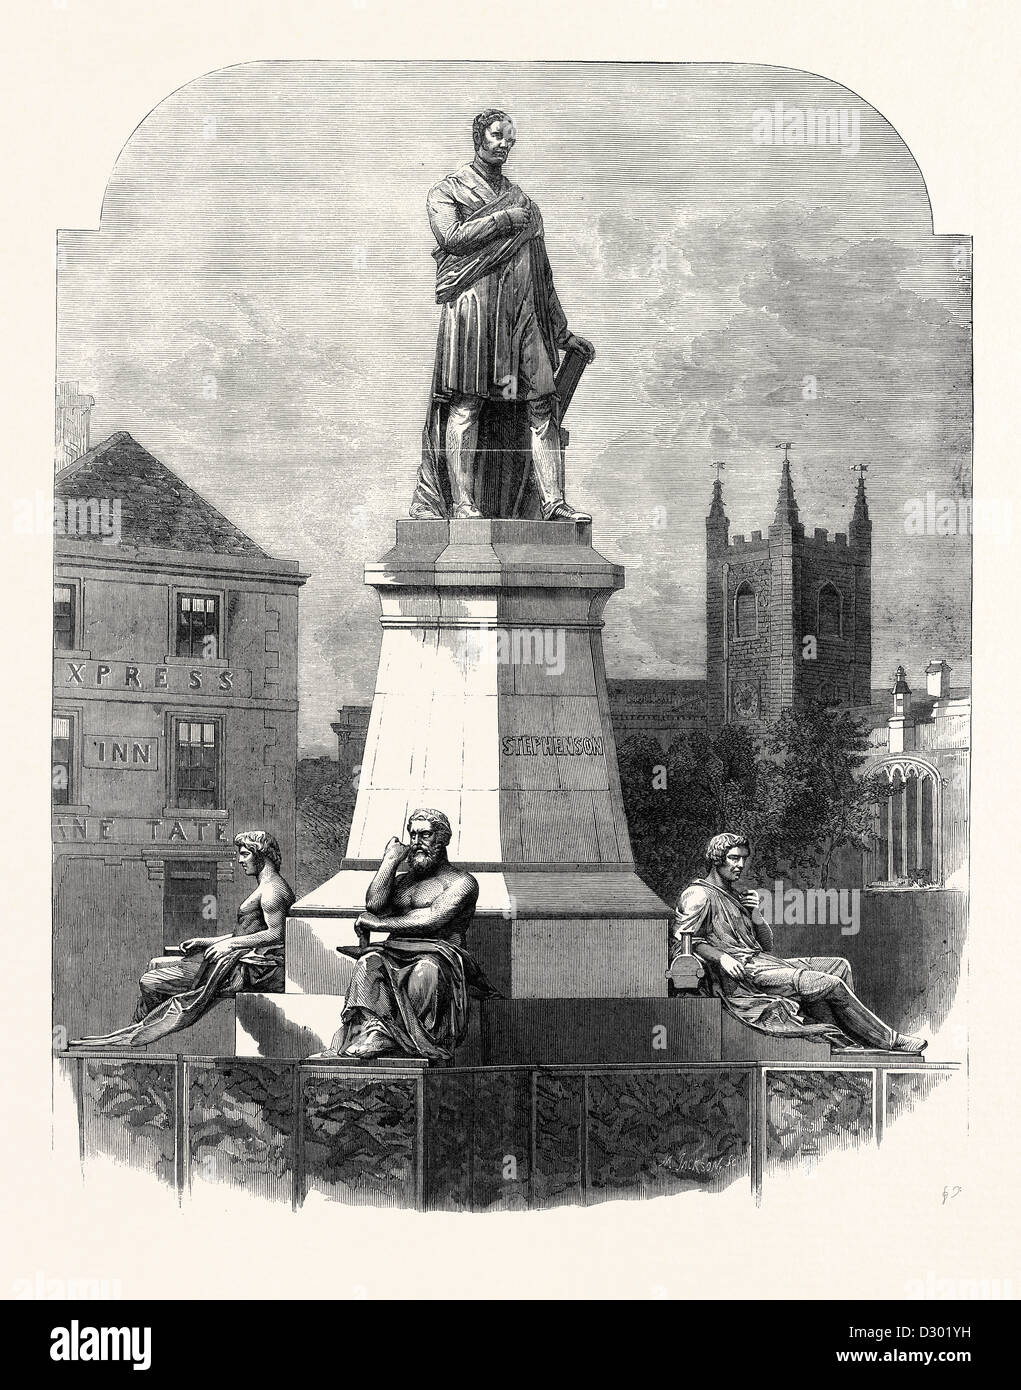 THE MONUMENT TO GEORGE STEPHENSON AT NEWCASTLE-ON-TYNE. - Stock Image